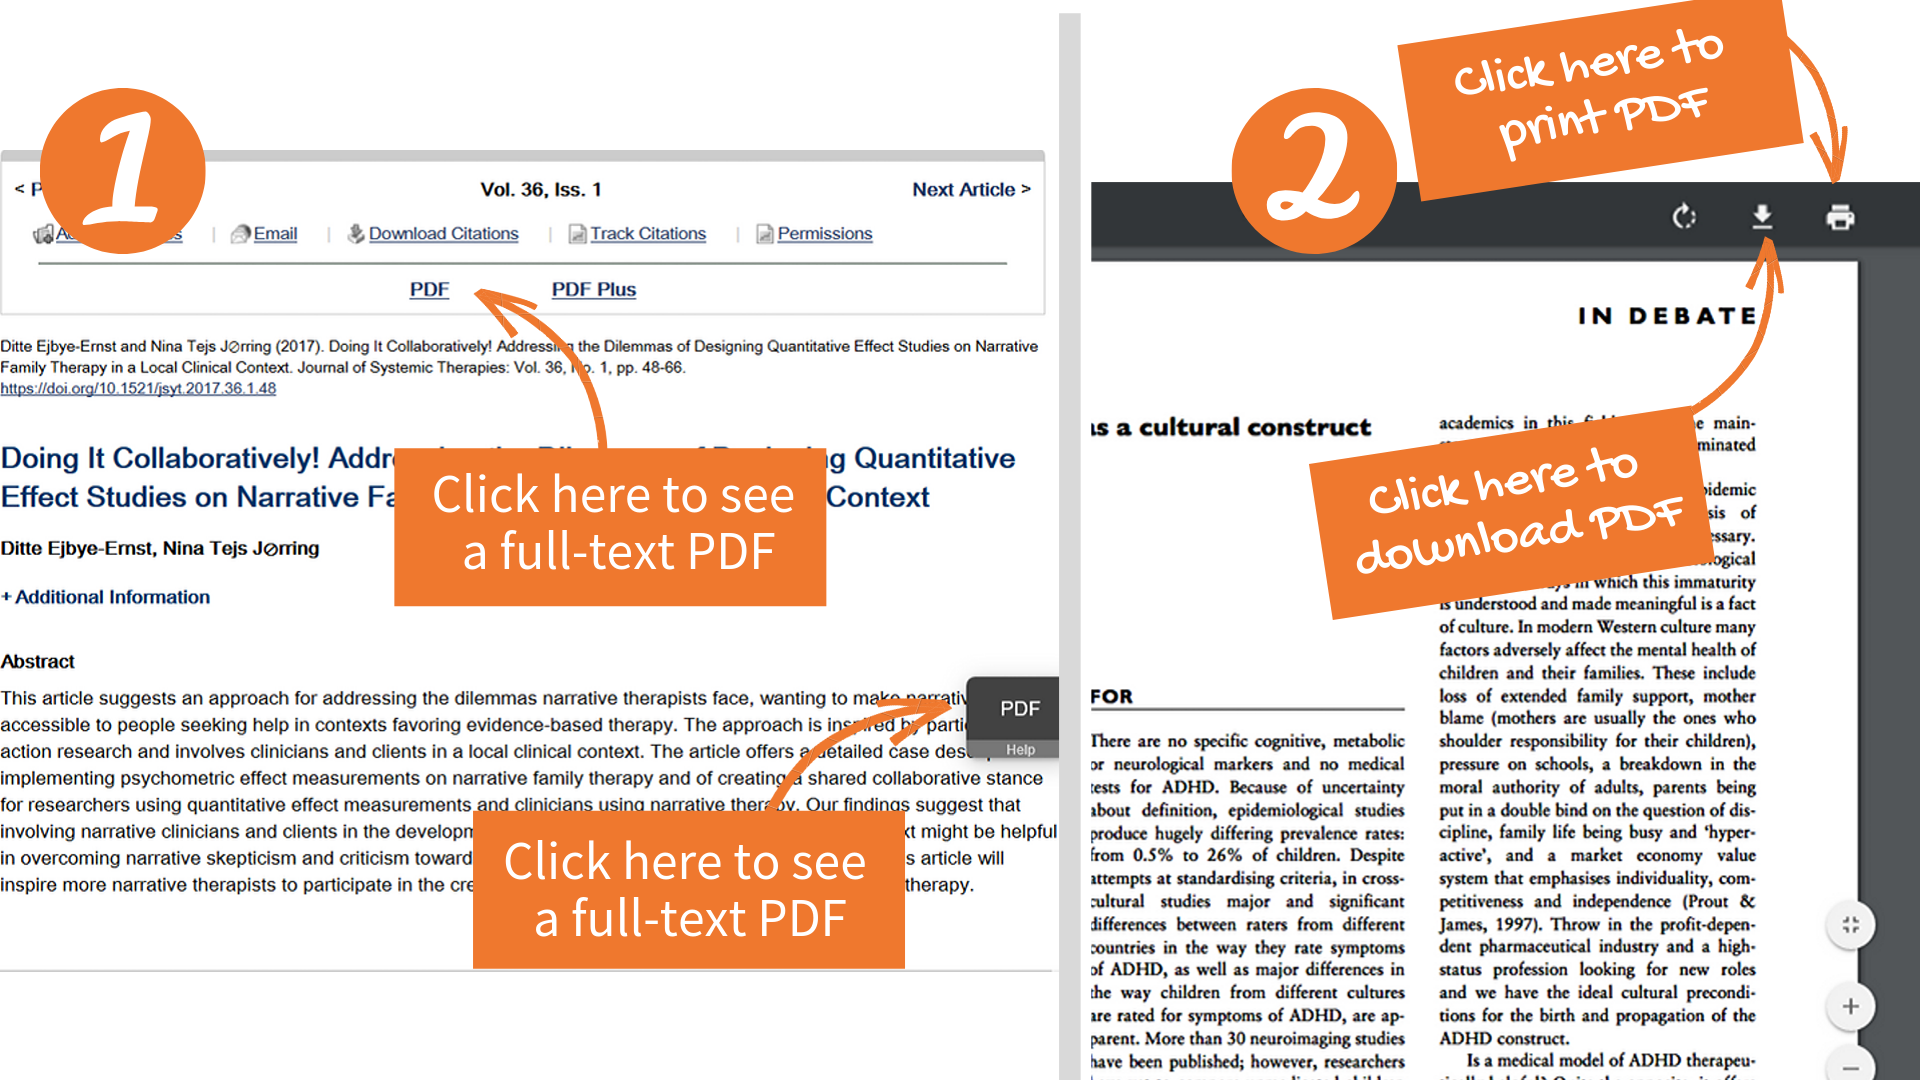 How to download and print PDFs with Guilford Press journals